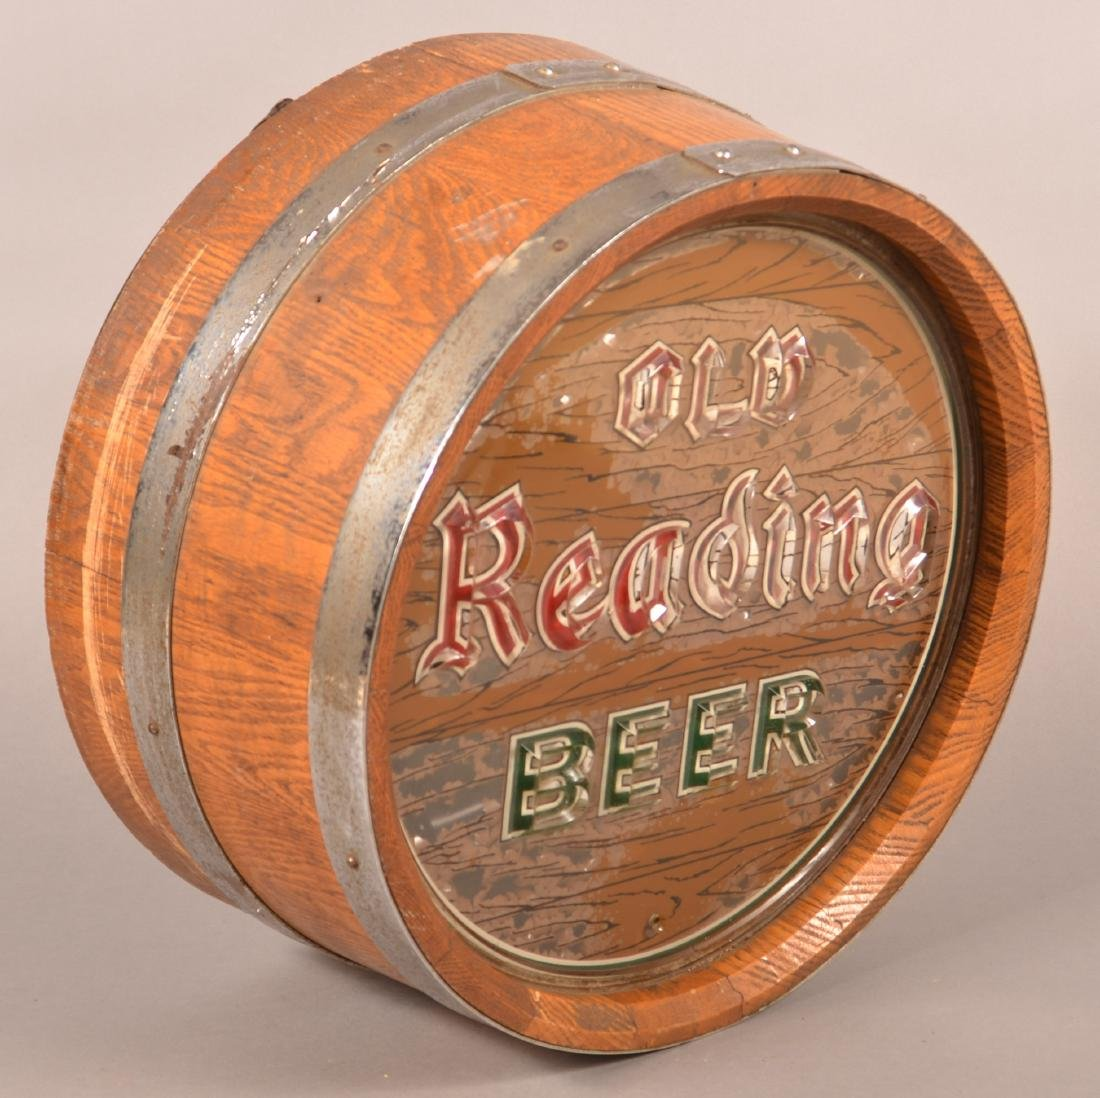 """OLD READING BEER"" Advertising Barrel Light. - 3"